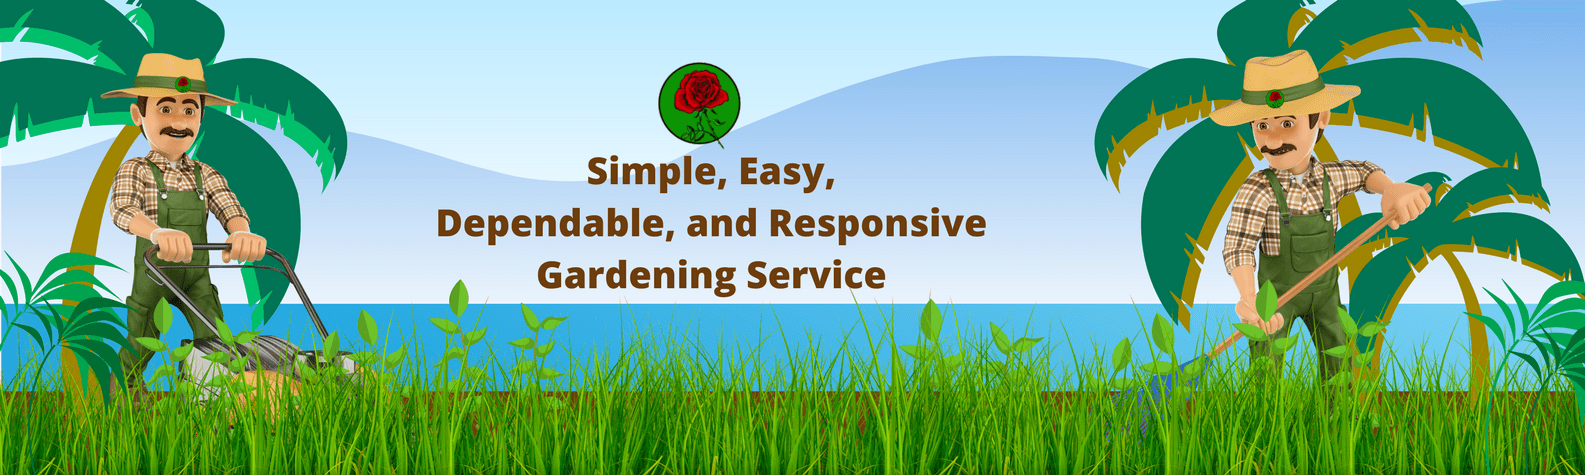 Mueller Landscape Inc is a local San Diego County family-owned landscape, lawn and garden maintenance company that has been serving San Diego County since 1982.